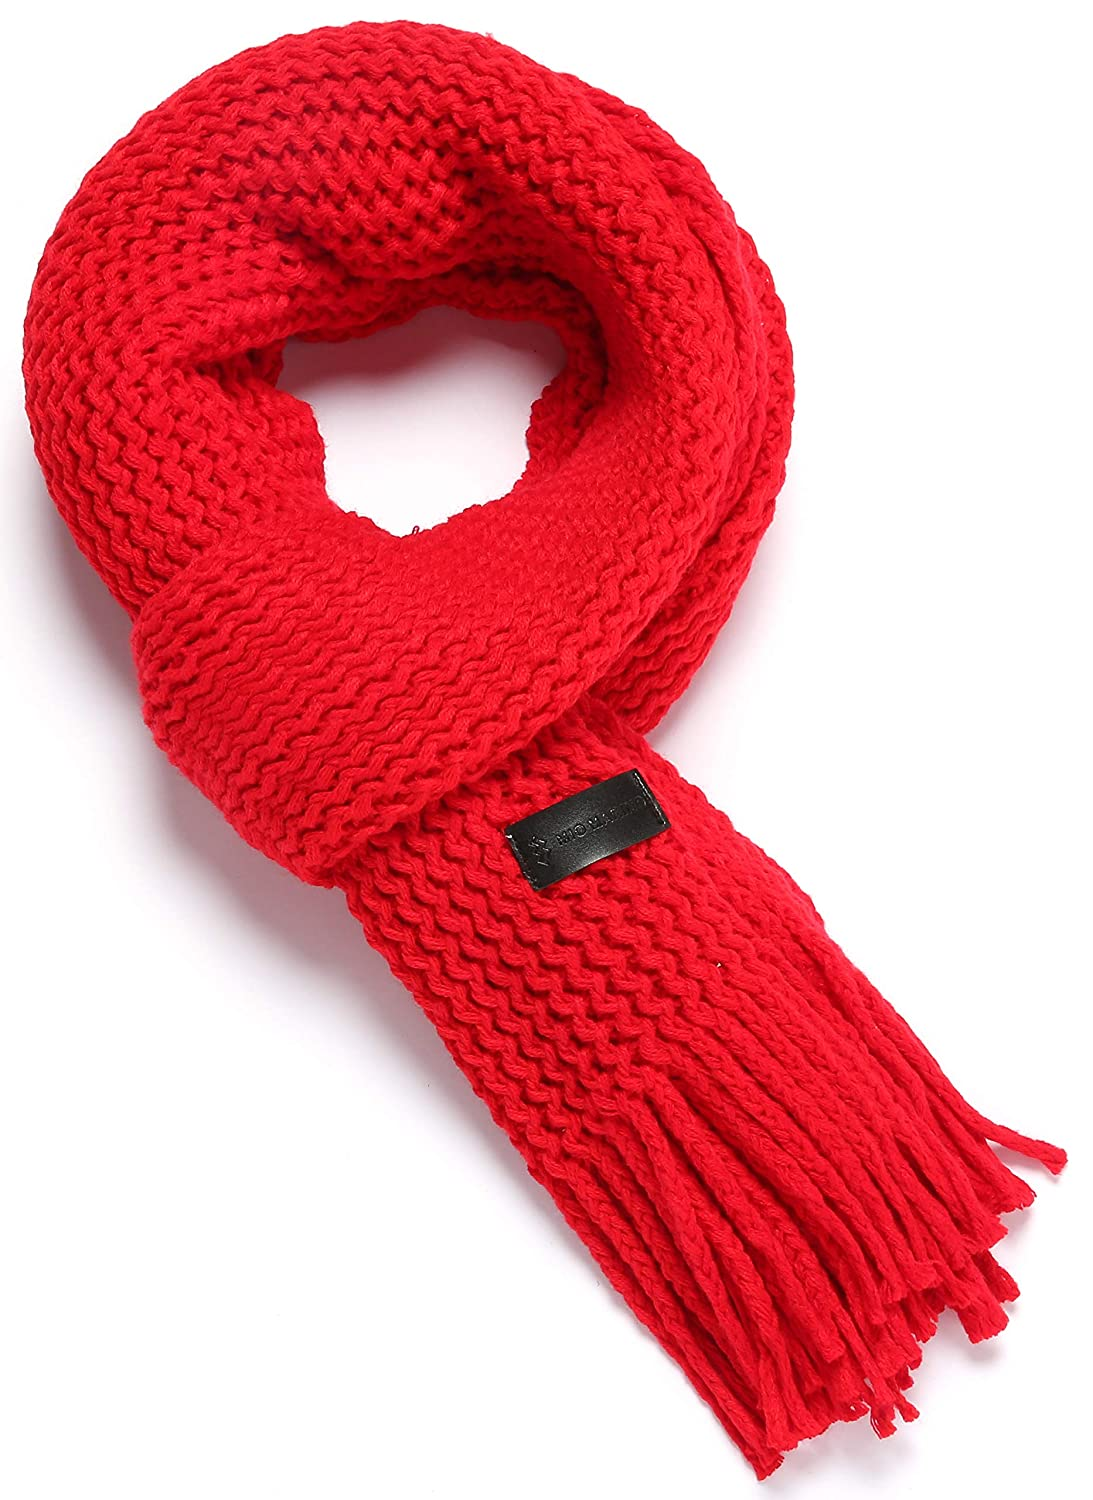 Mio Marino Mens Knitted Scarf - Winter Scarfs for Men US037-08-BK